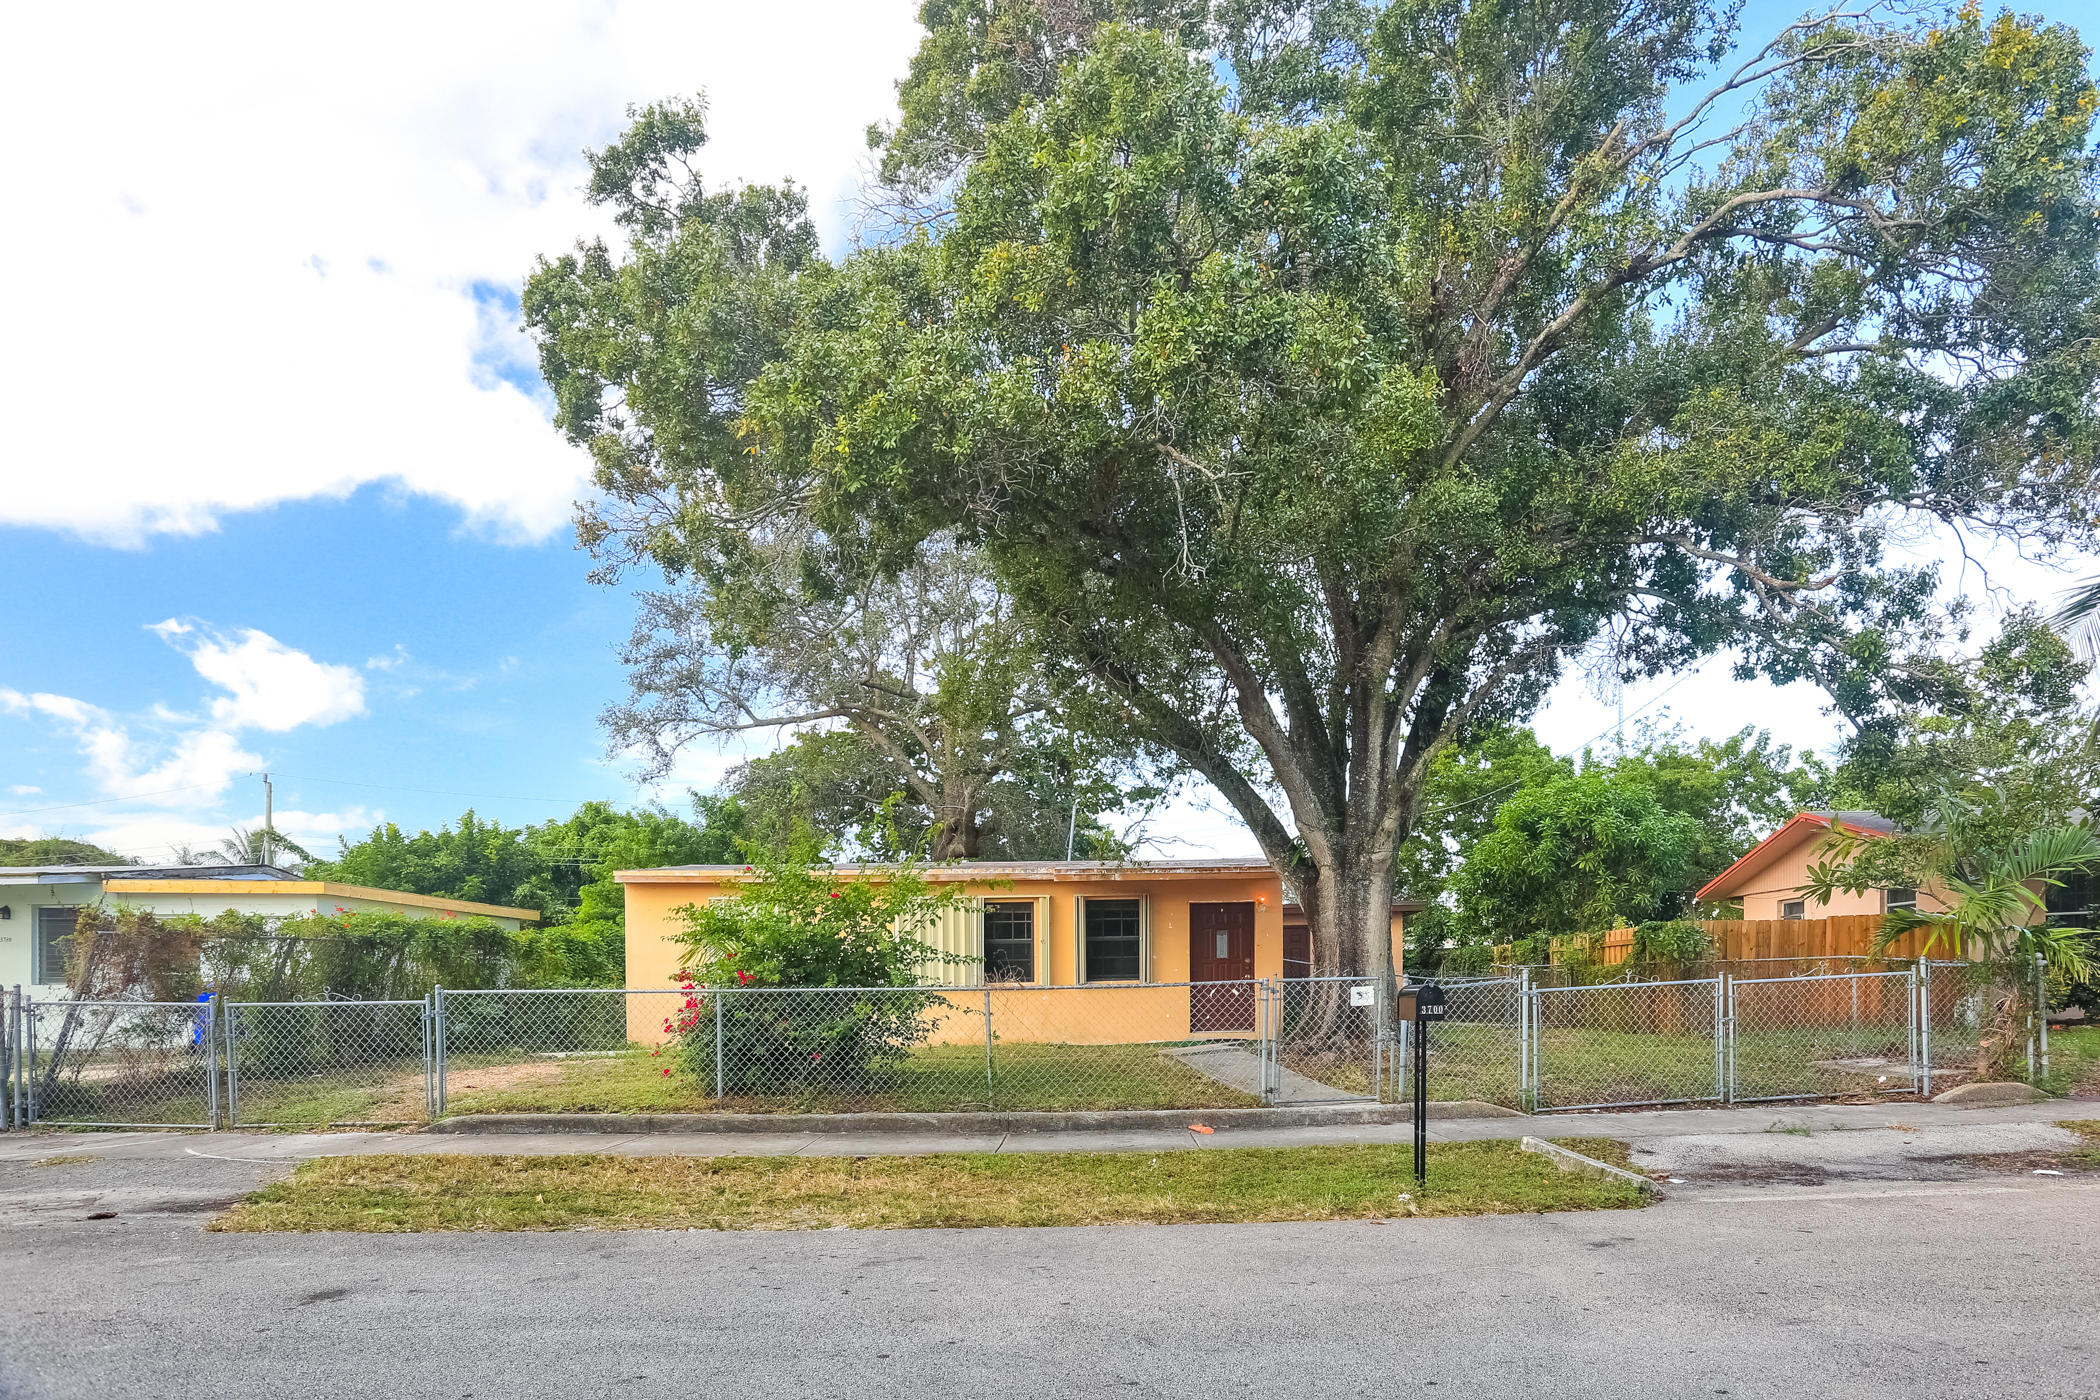 3700 Sw 45th Terrace, West Park, FL 33023